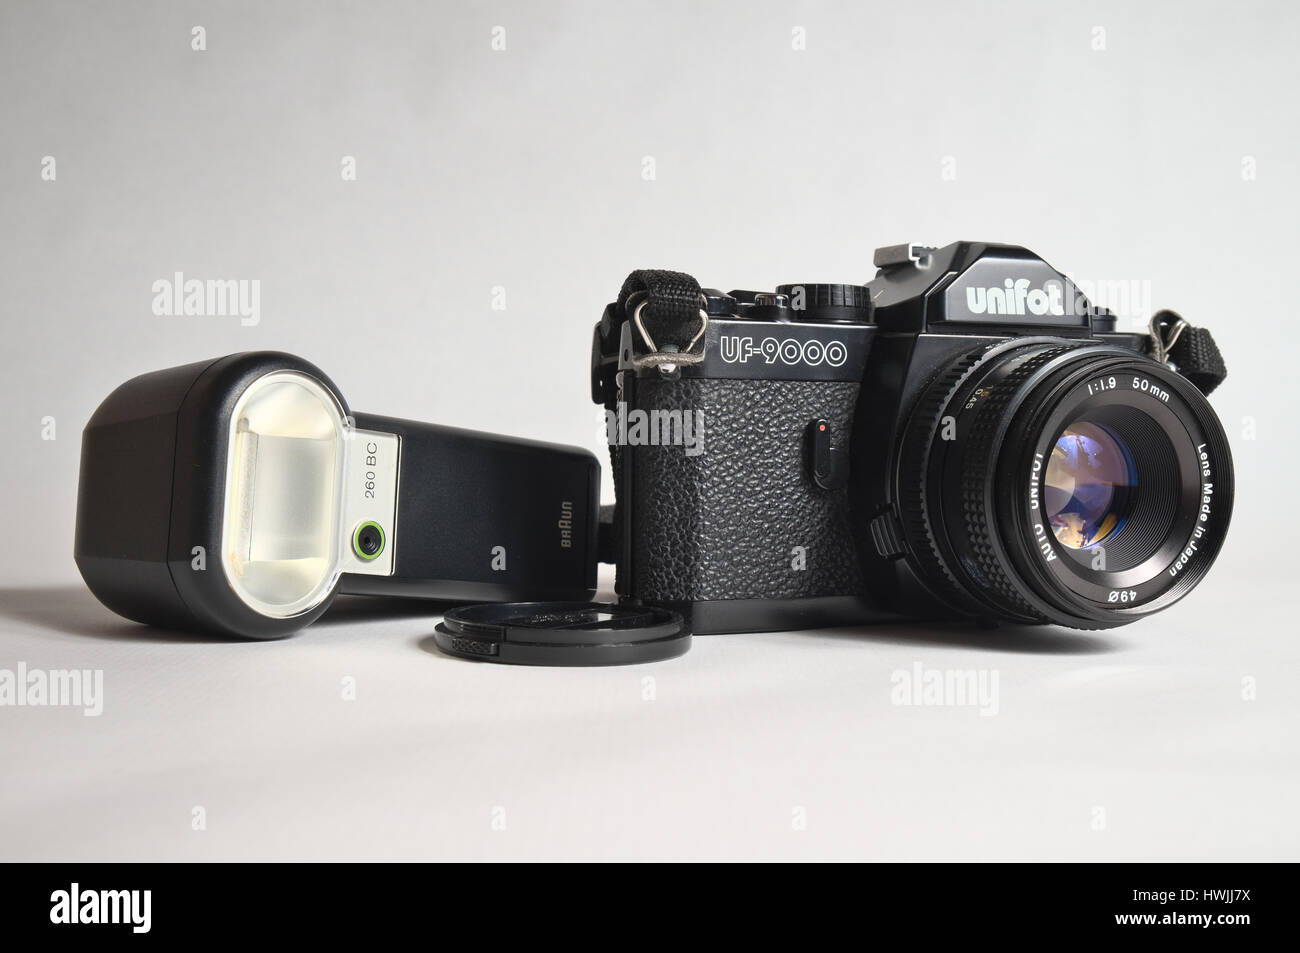 Old Unifot analogue camera, model UF-9000. 35mm film compact camera, with 50mm Unifot K-mount lens f/1.9 - Stock Image